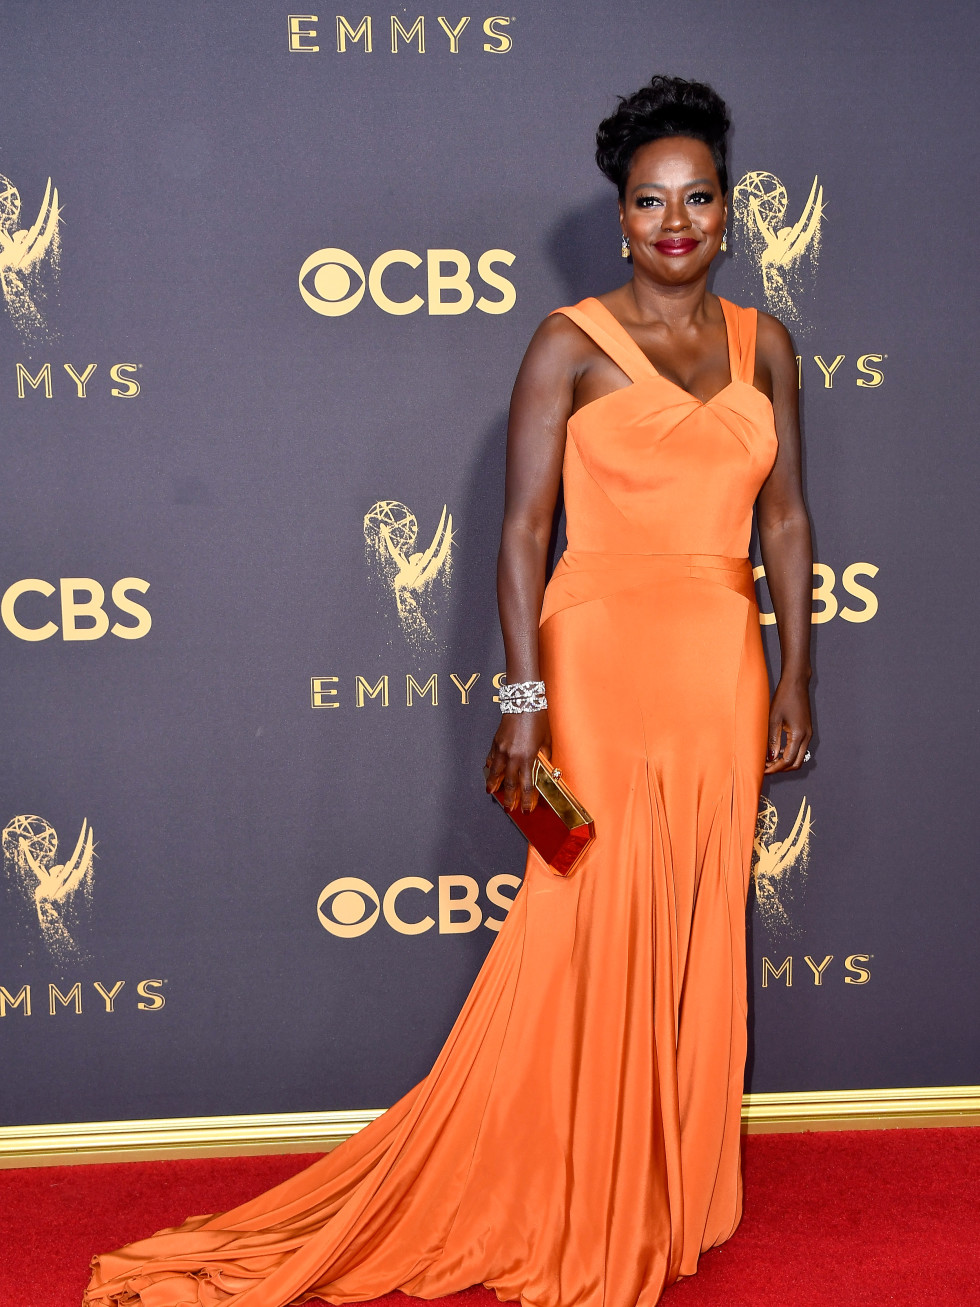 Viola Davis in Zac Posen at Emmy Awards 2017